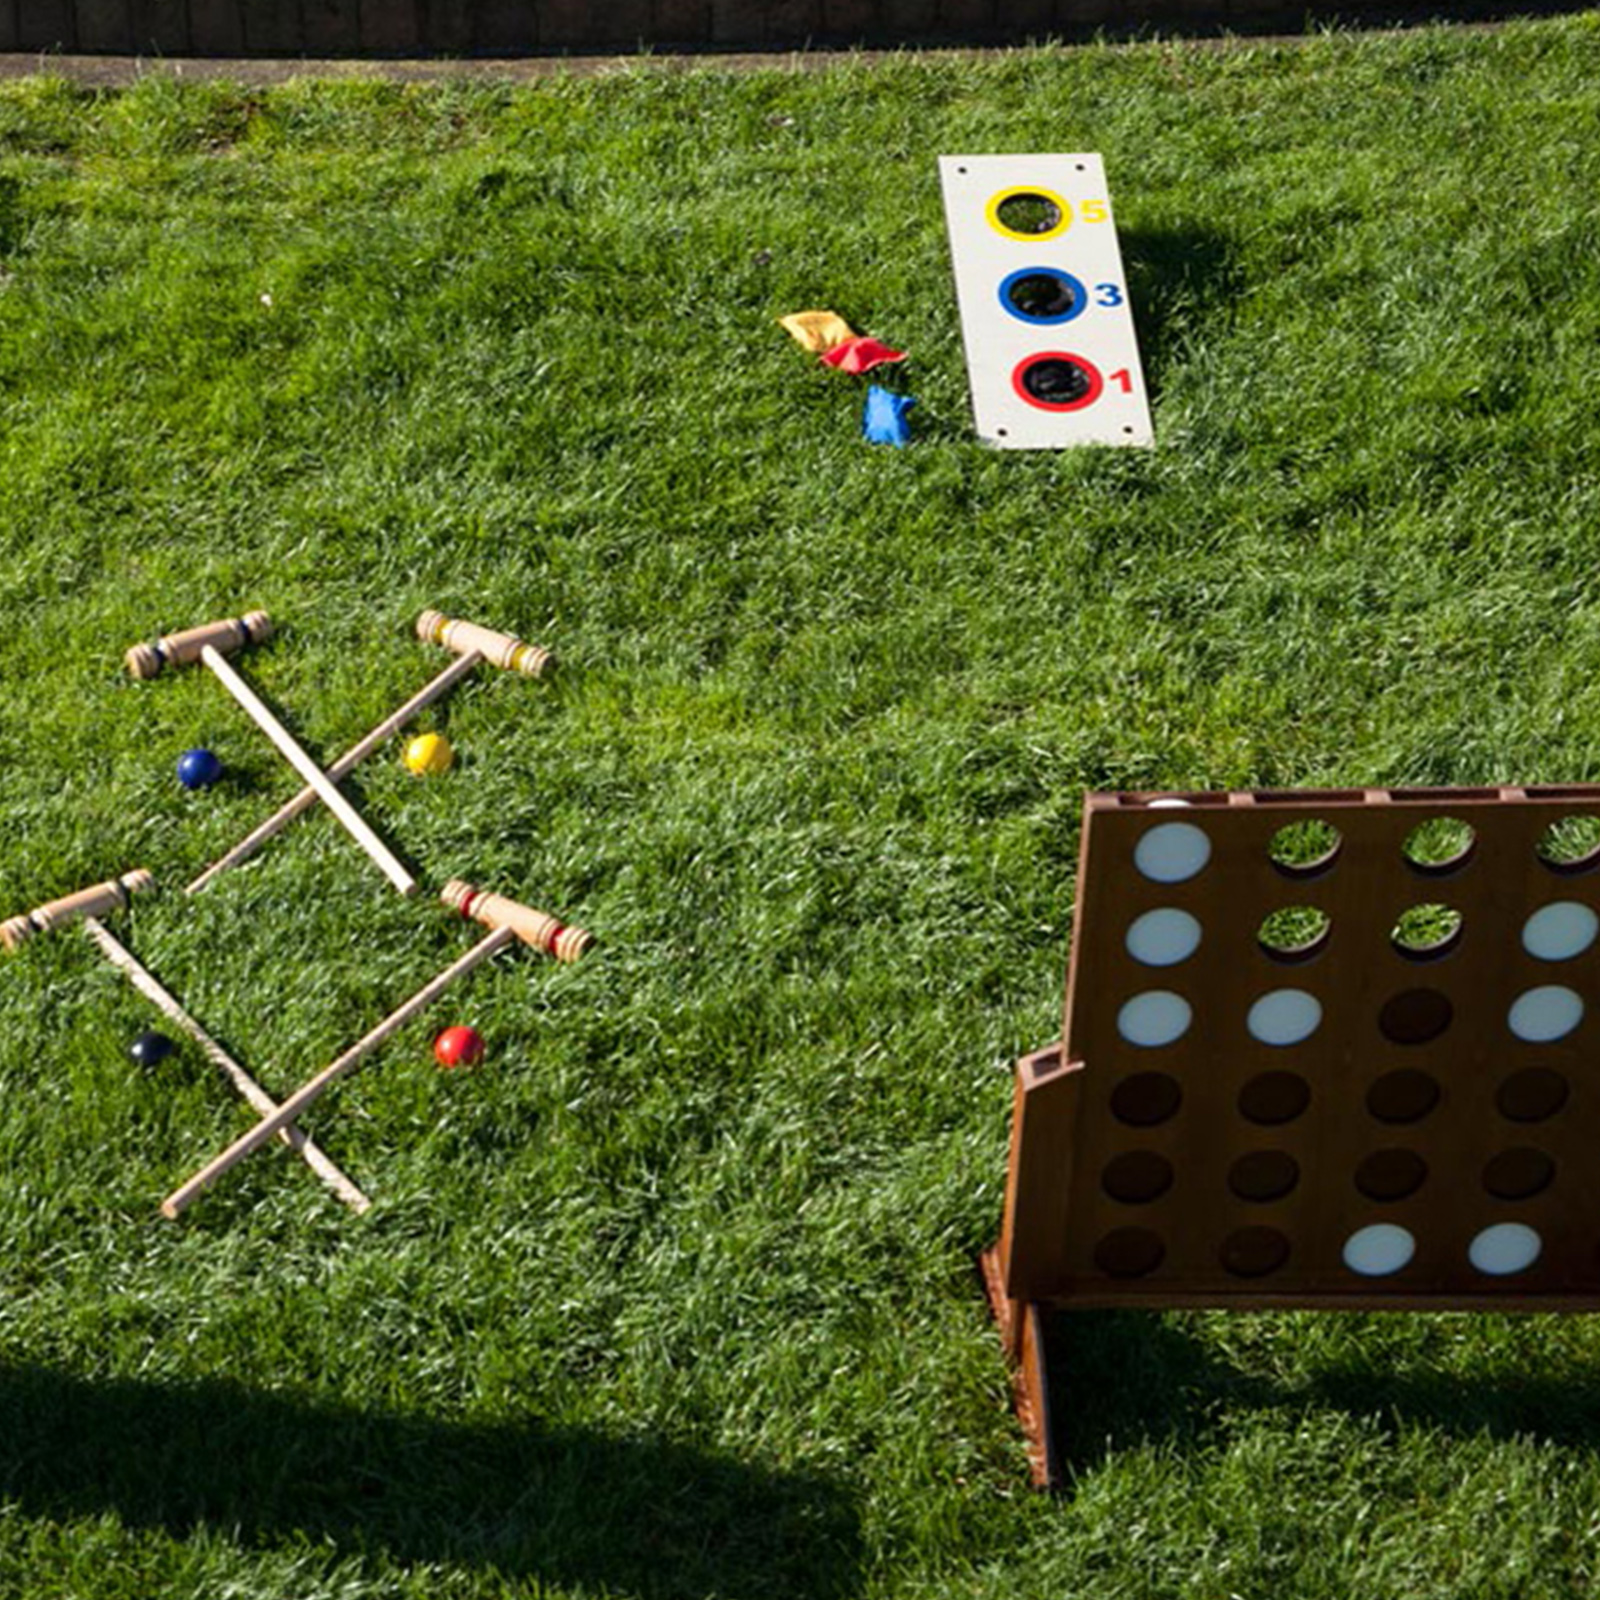 VINTAGE GARDEN GAMES   Our range of classical outdoor games for hire are perfect entertainment for your wedding guests. With a stylish wooden finish these high quality games will look great in the garden area of your venue and provide great entertainment for your guests.   www.vgg.co.nz